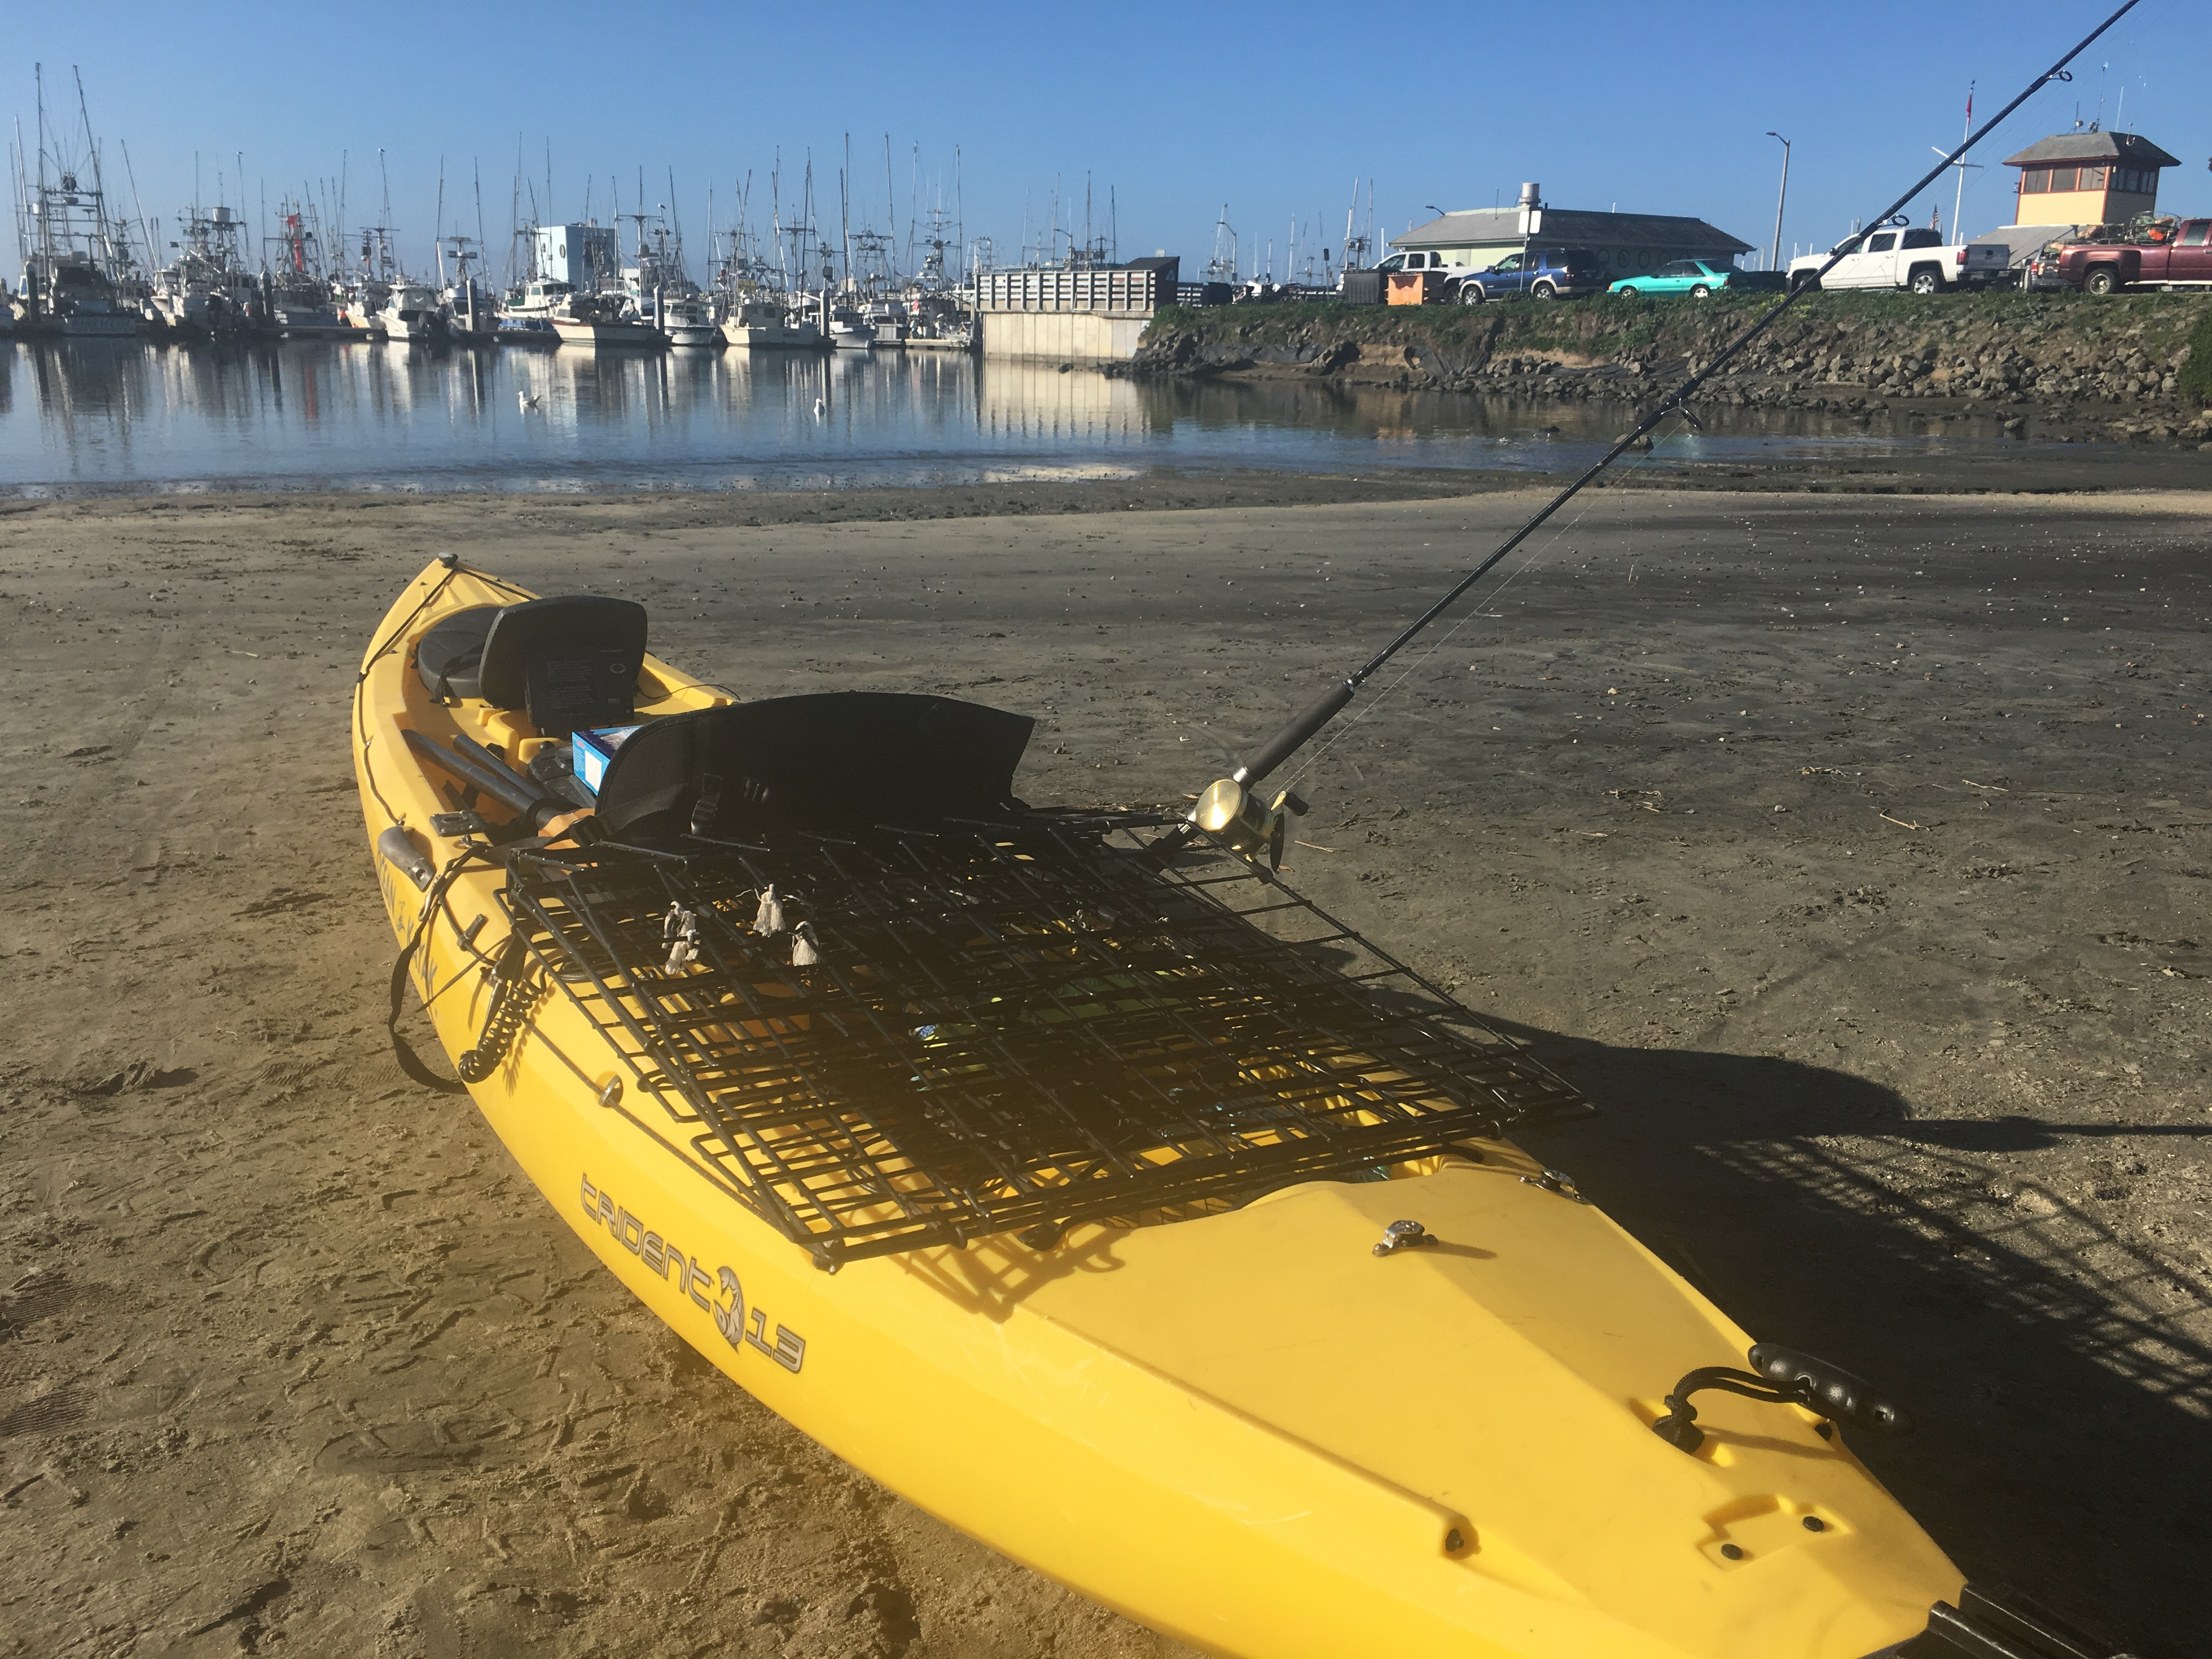 Kayak Fishing for Dungeness Crabs in Silicon Valley - Paubox